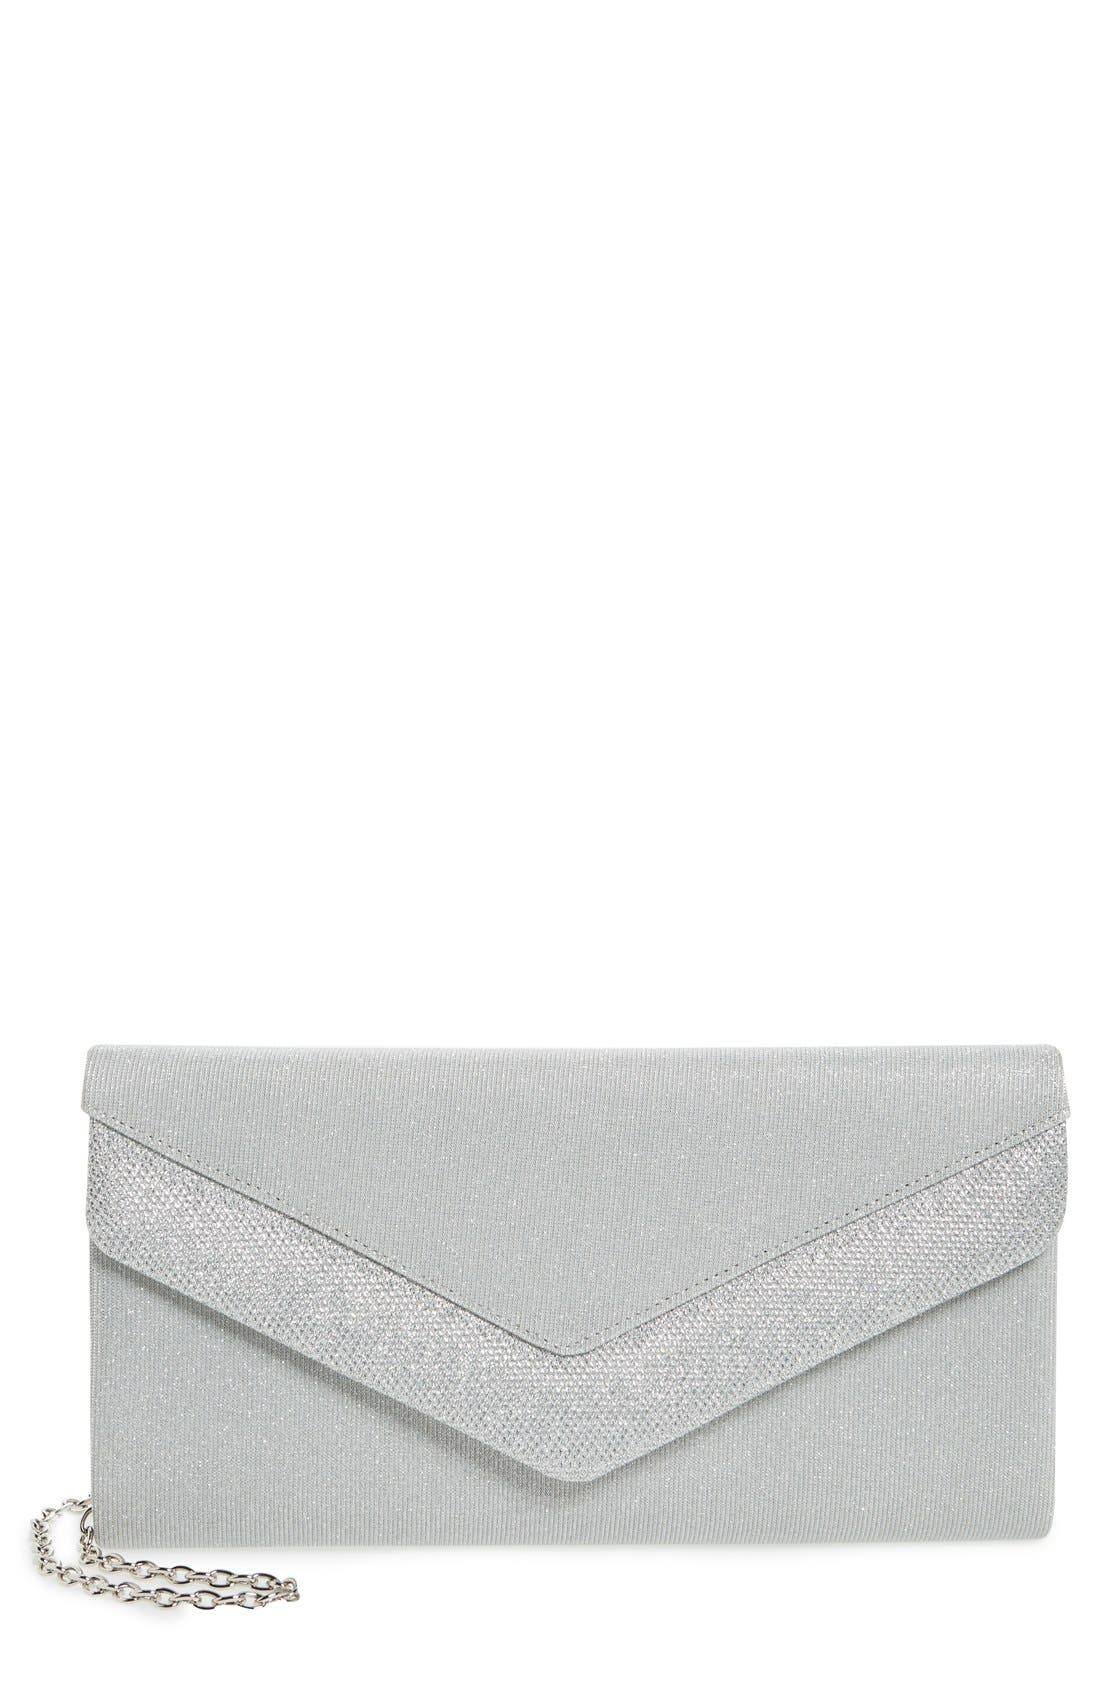 Menbur Metallic Envelope Clutch